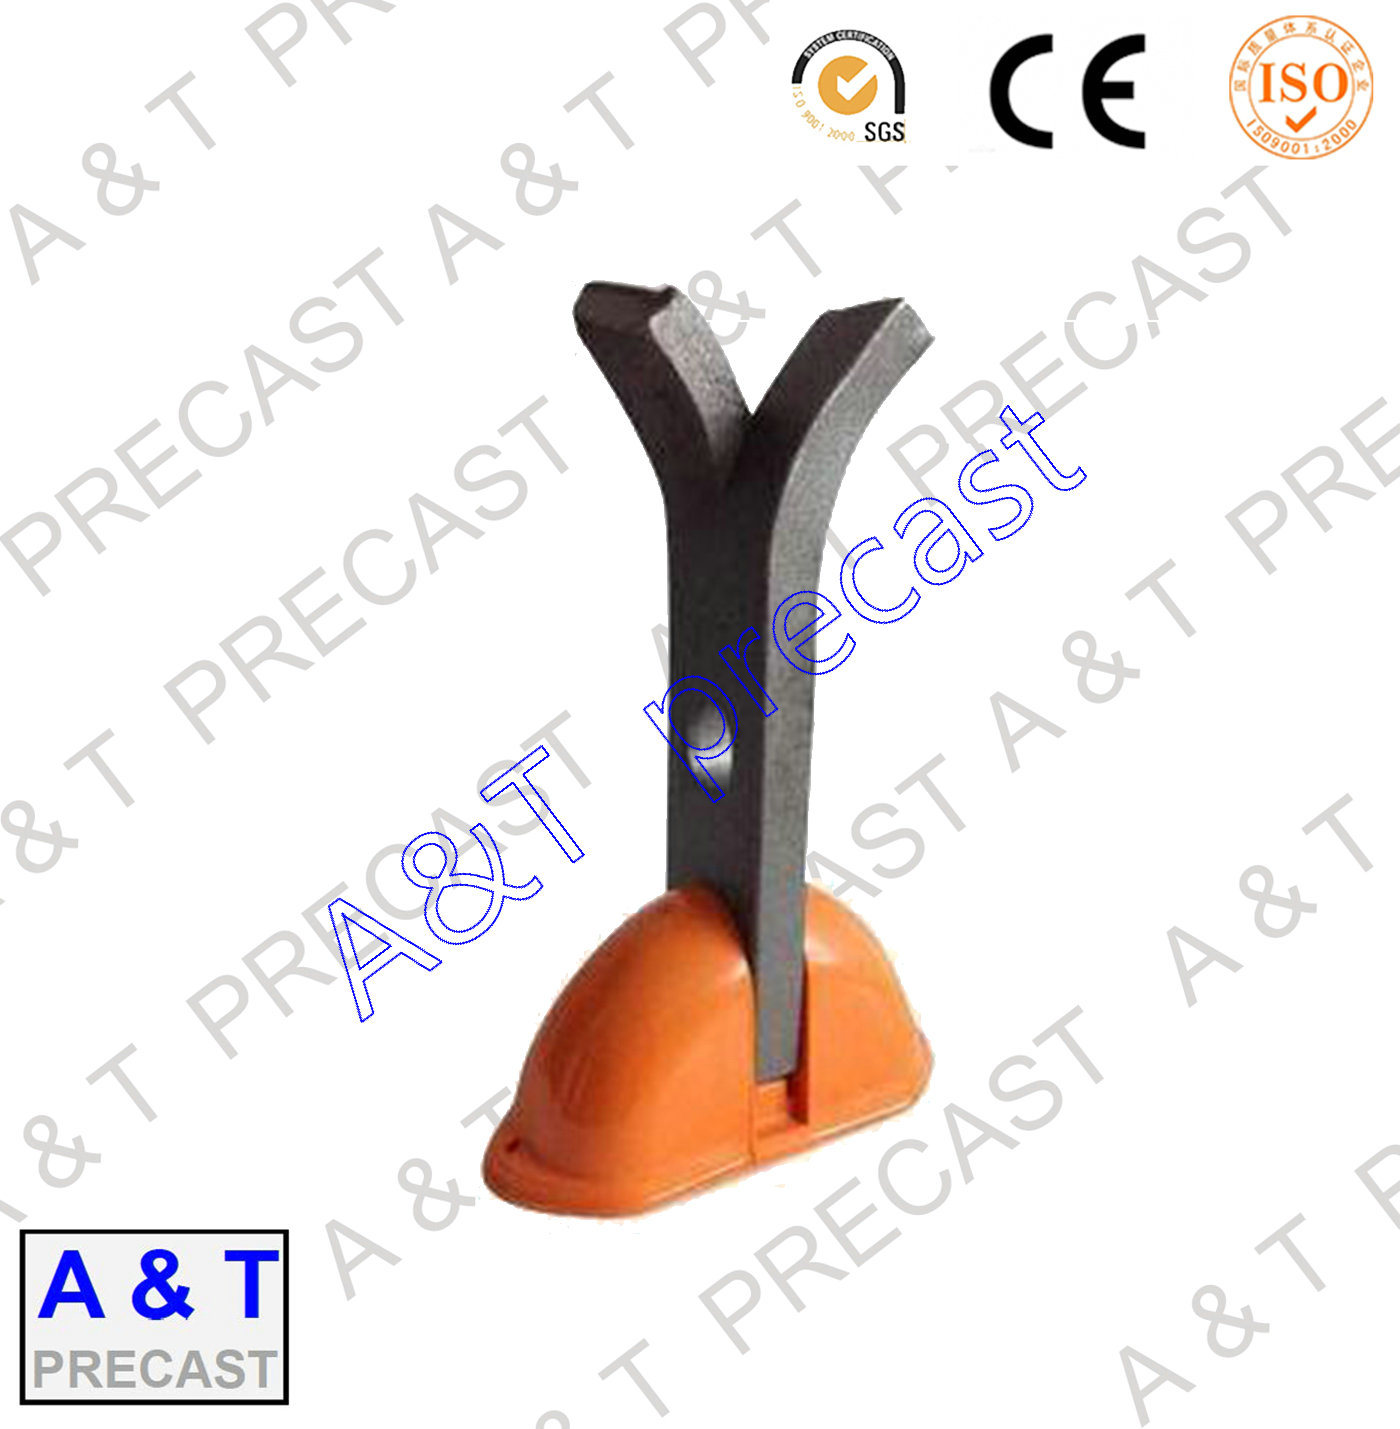 Erection Anchor /Lifting Anchor/Precast Concrete Accessories Parts for Construction Hardware pictures & photos